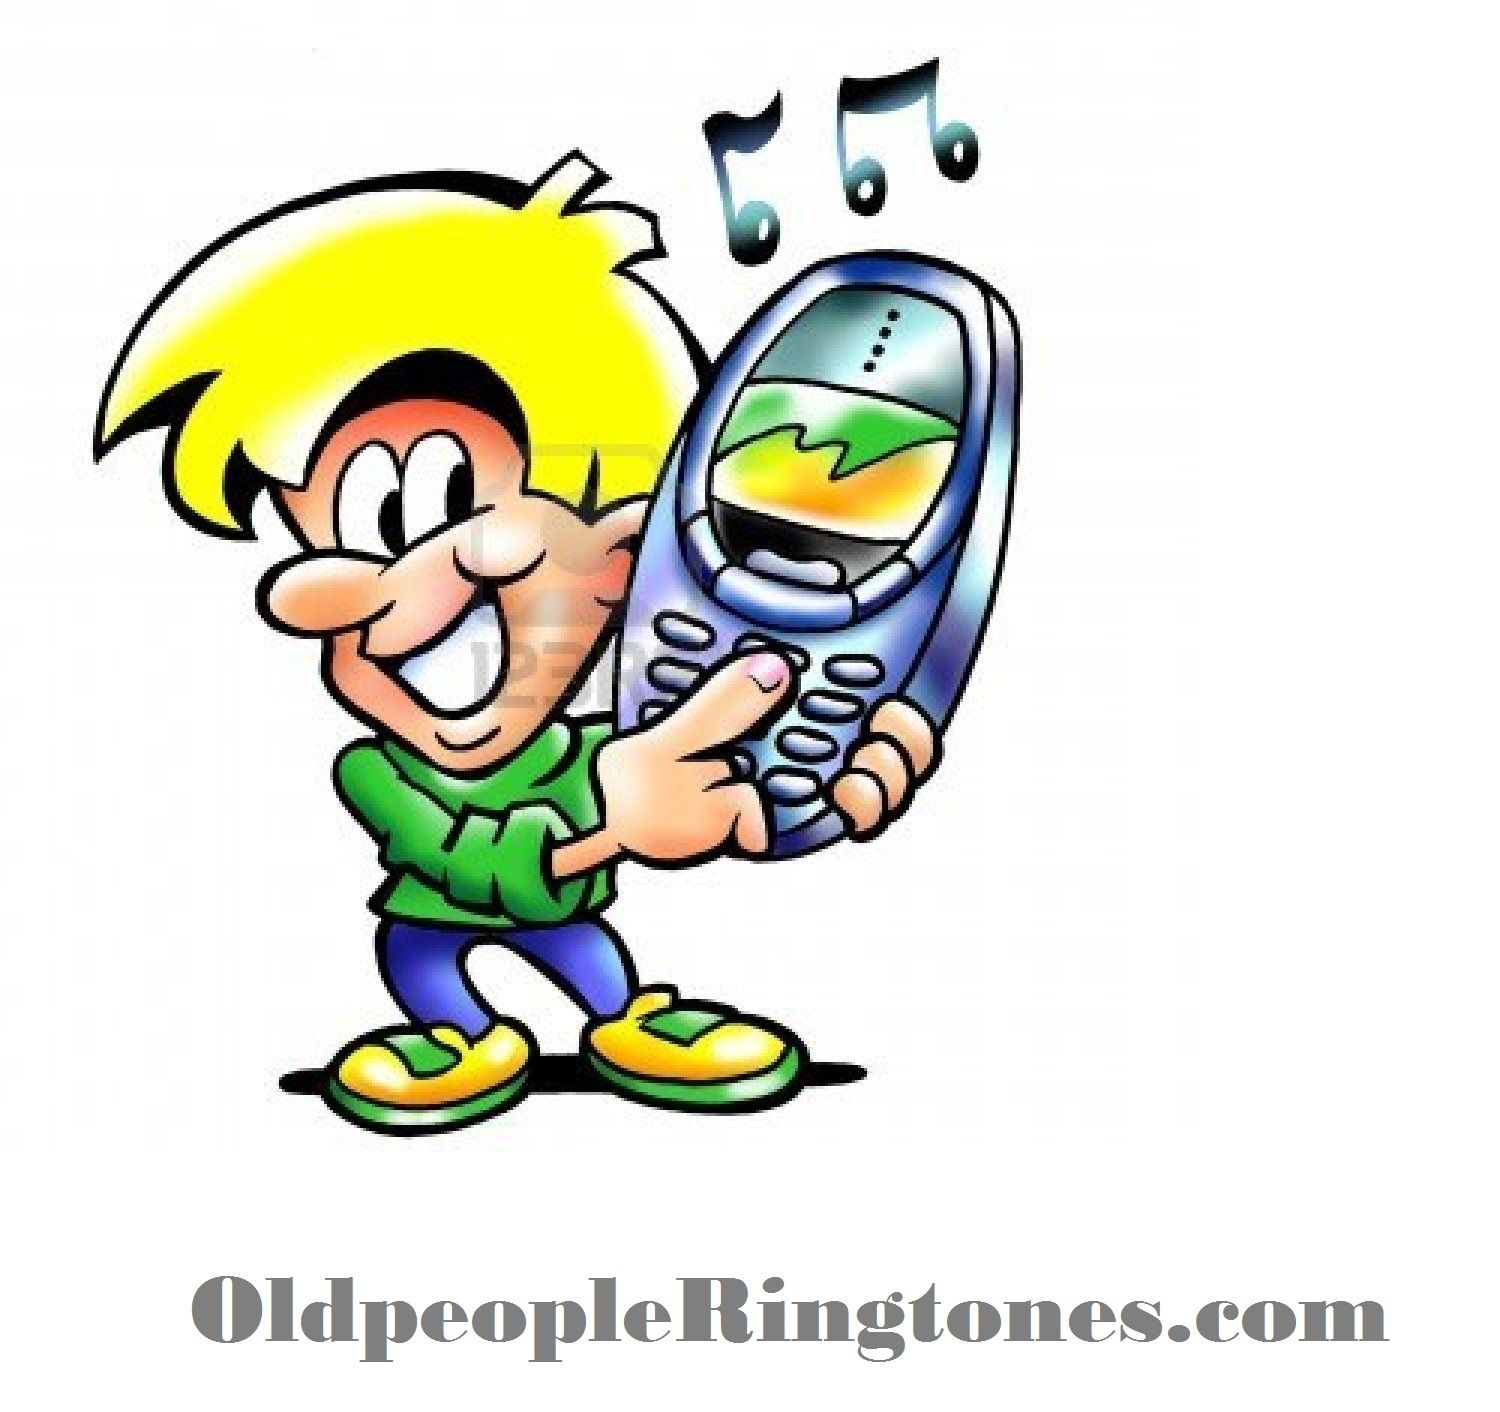 Electronic Free Ringtones Download For Android Phones 1000 images about free mp3 ringtones on pinterest